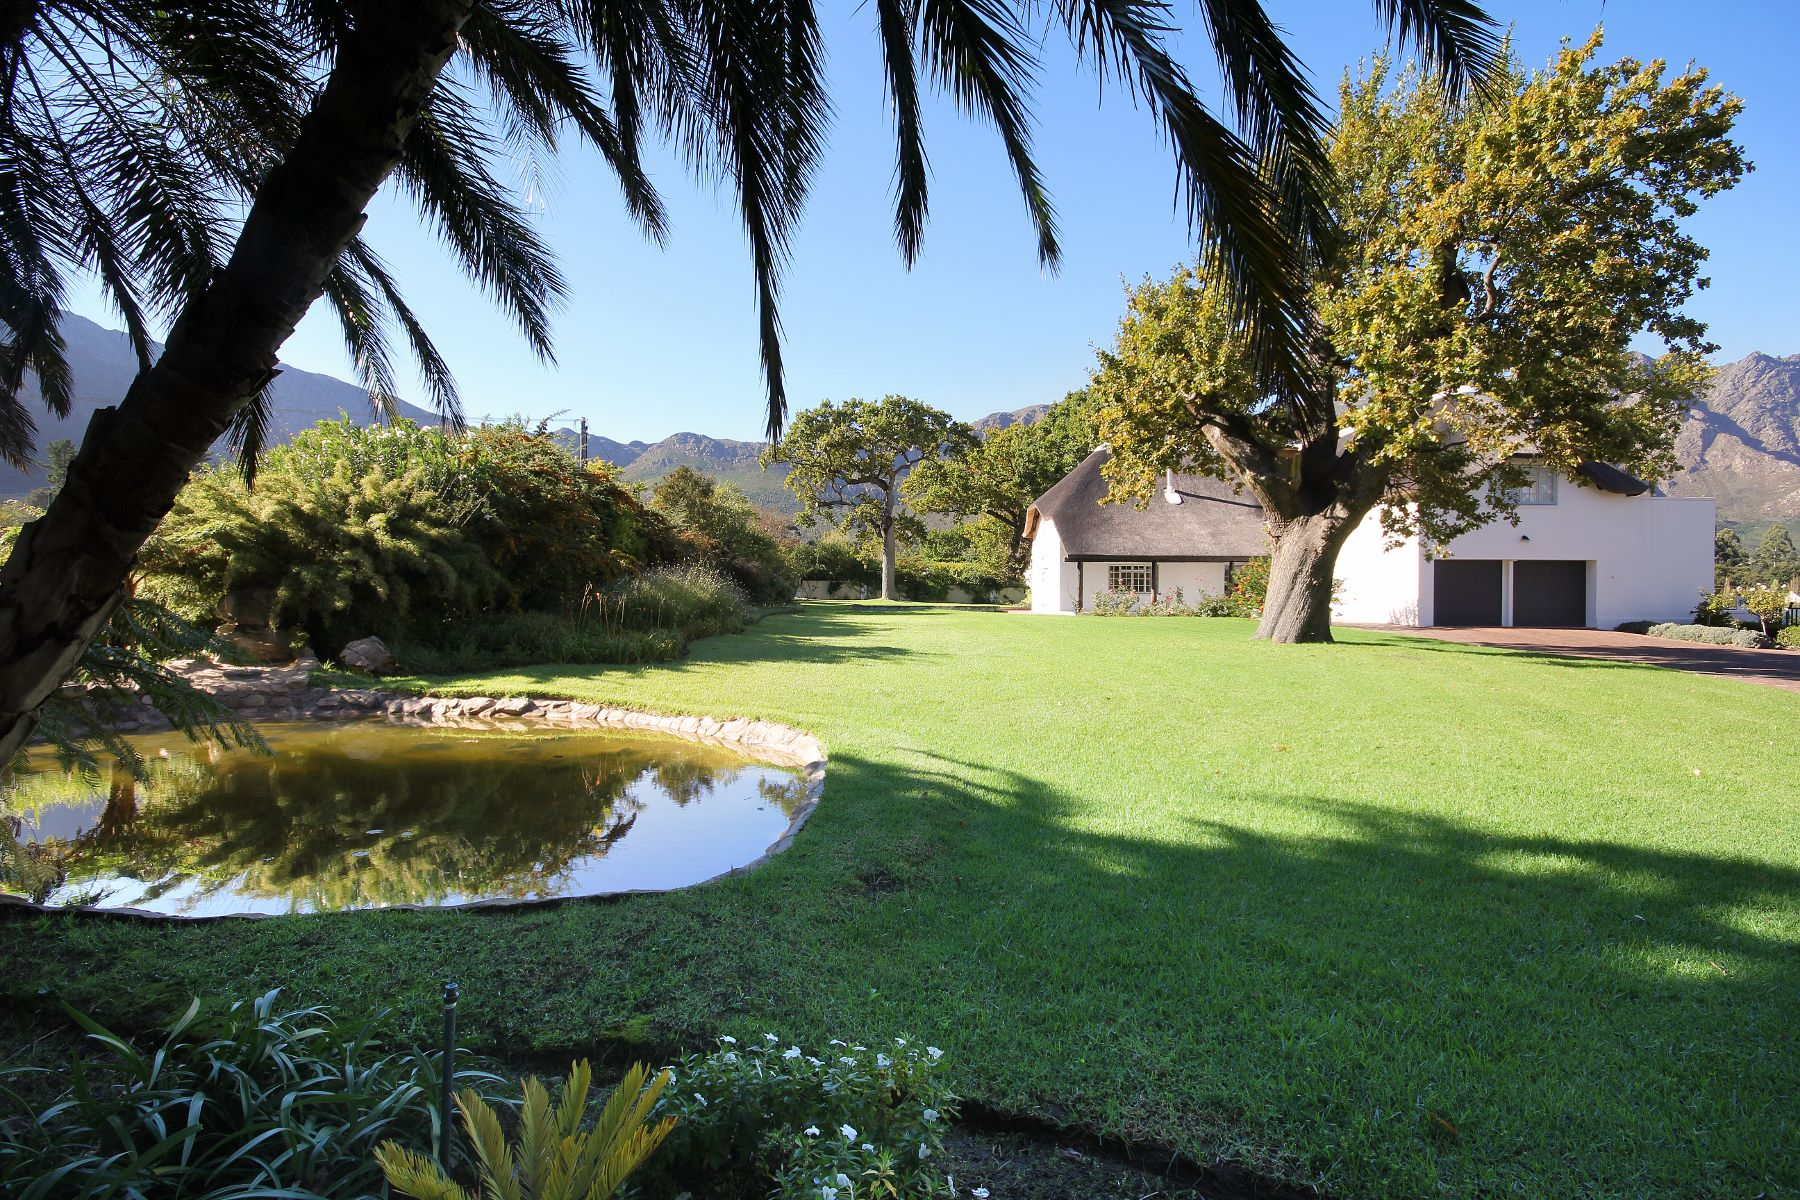 Single Family Home for Sale at Franschhoek Franschhoek, Western Cape 7690 South Africa